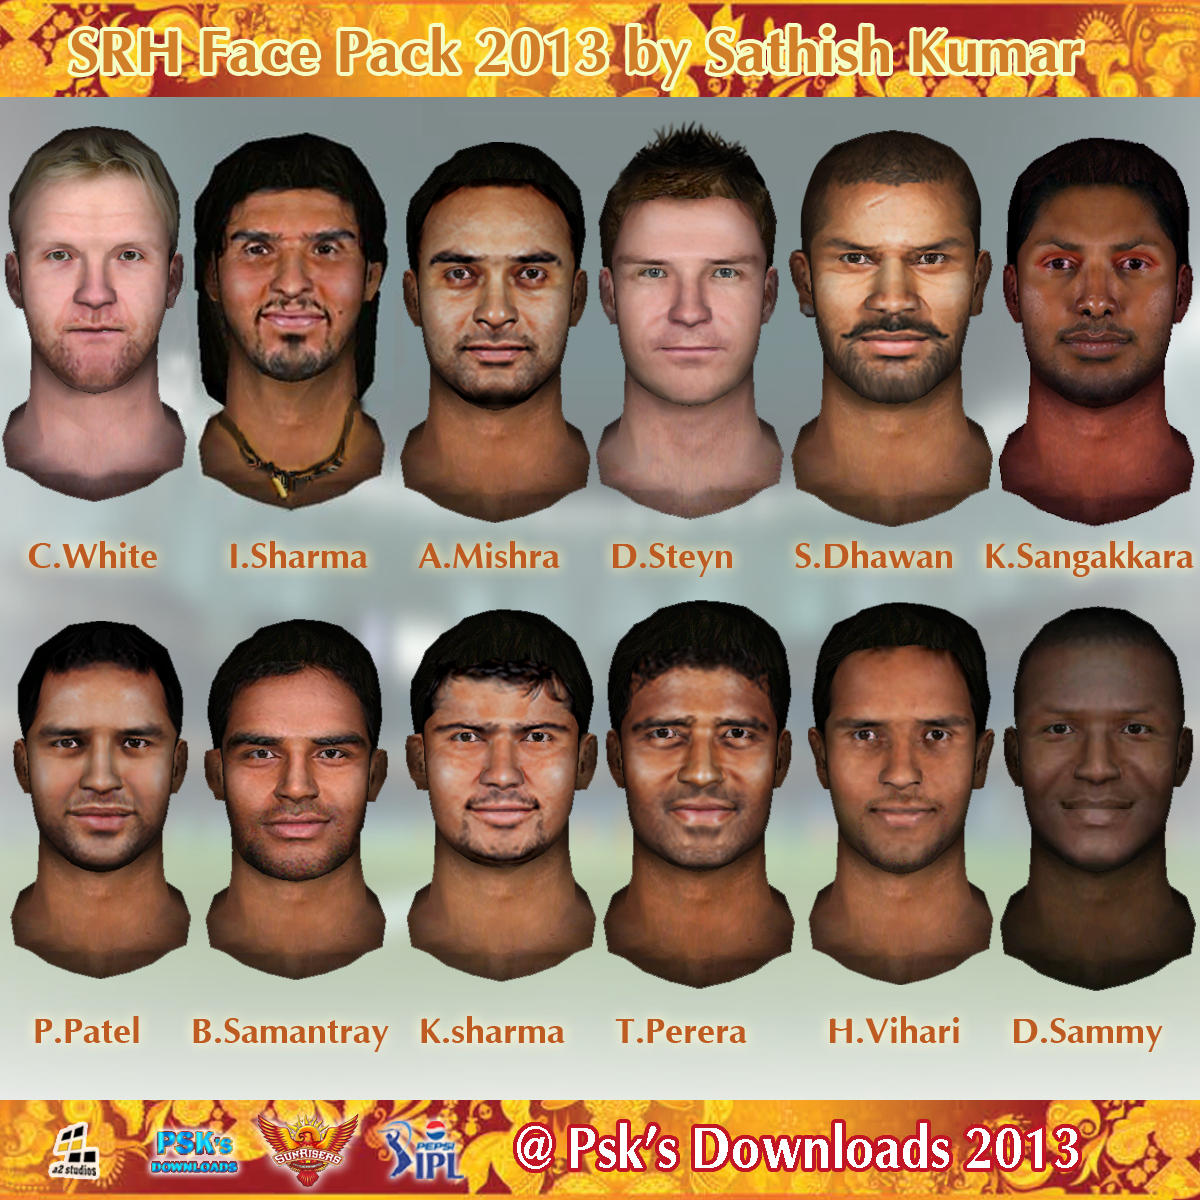 Ntr Ipl Add Download: Sunrisers Hyderabad Face Pack